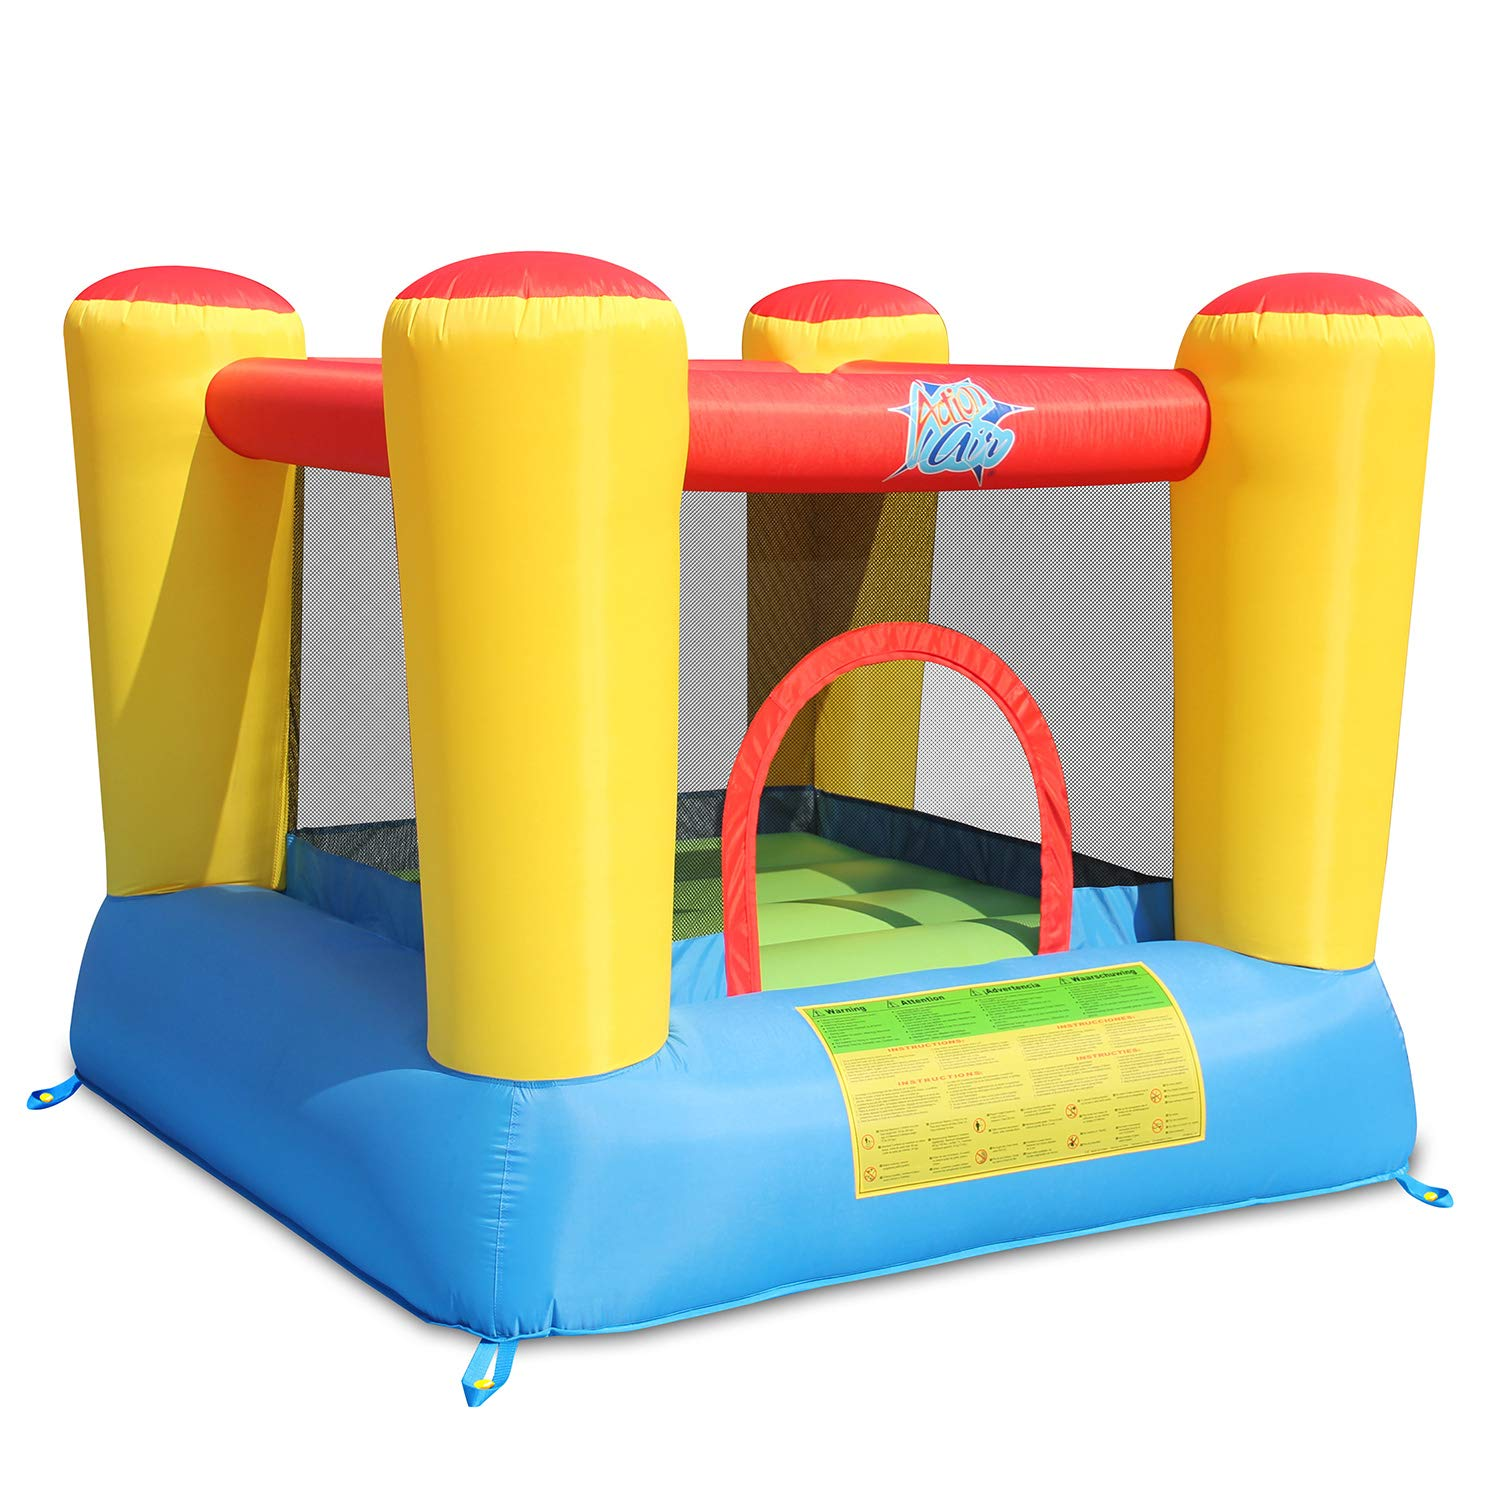 Action Luft Bounce House, 6.6X6.6 Foot Inflatable Bounce House mit Blower, Kids Bouncy House für Outdoor und Indoor, Durable Sewn mit Extra Thick Material, Idee für Kids(9420)